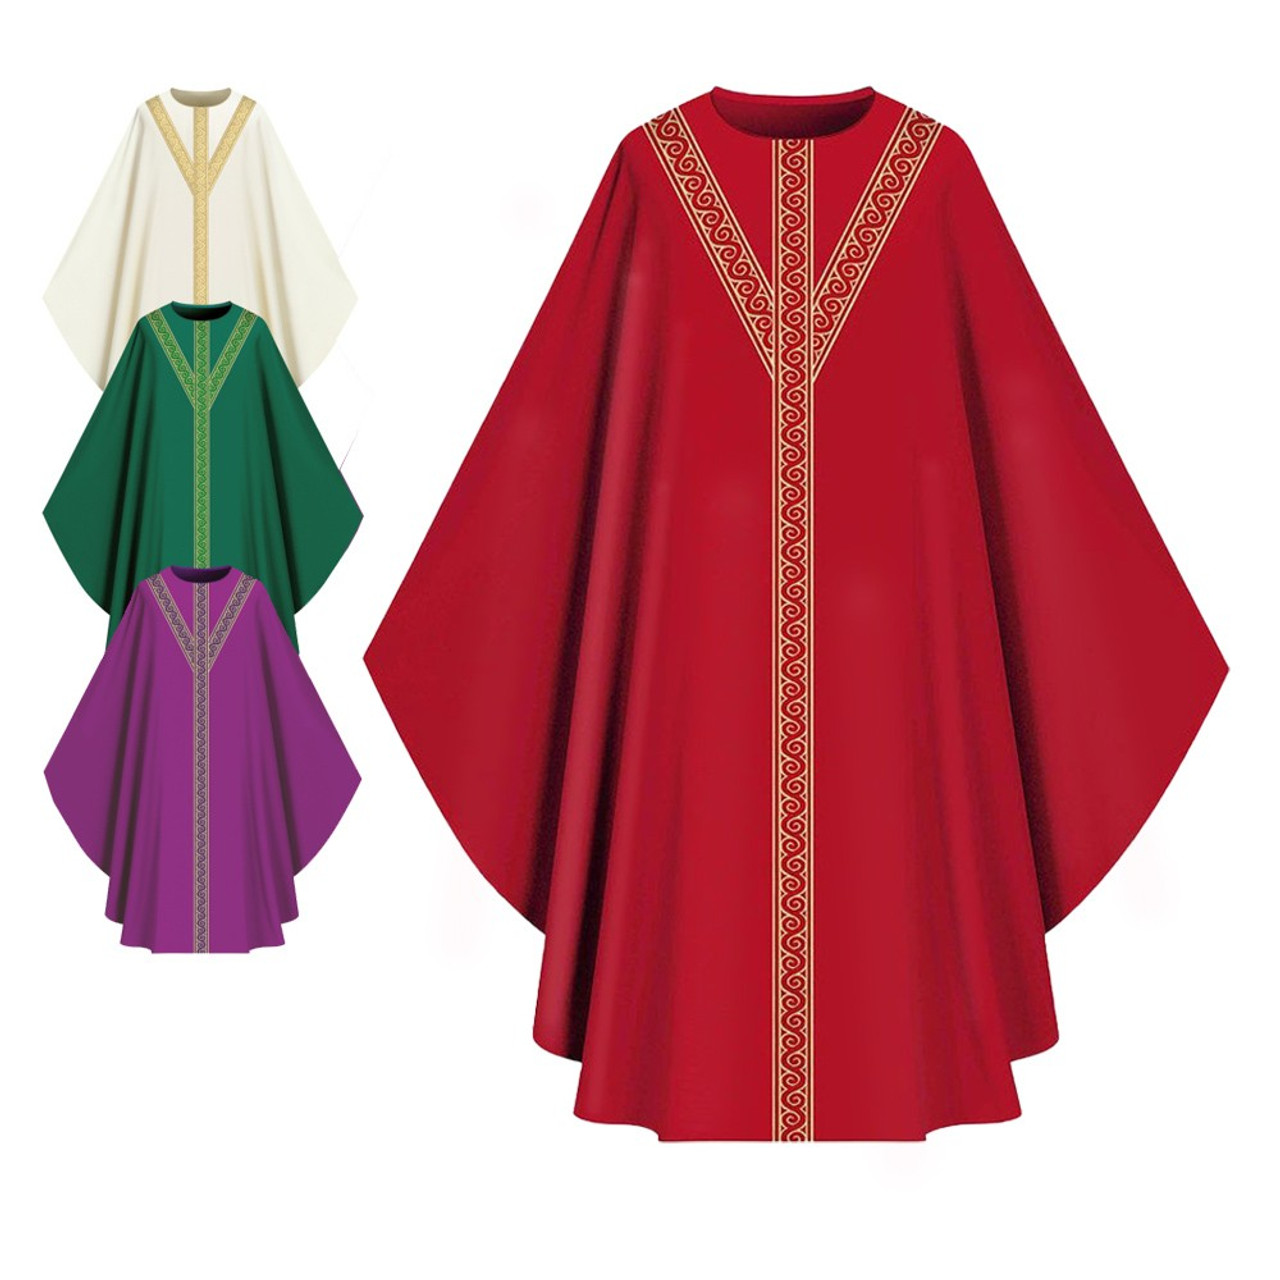 701052 Red Assisi Chasuble